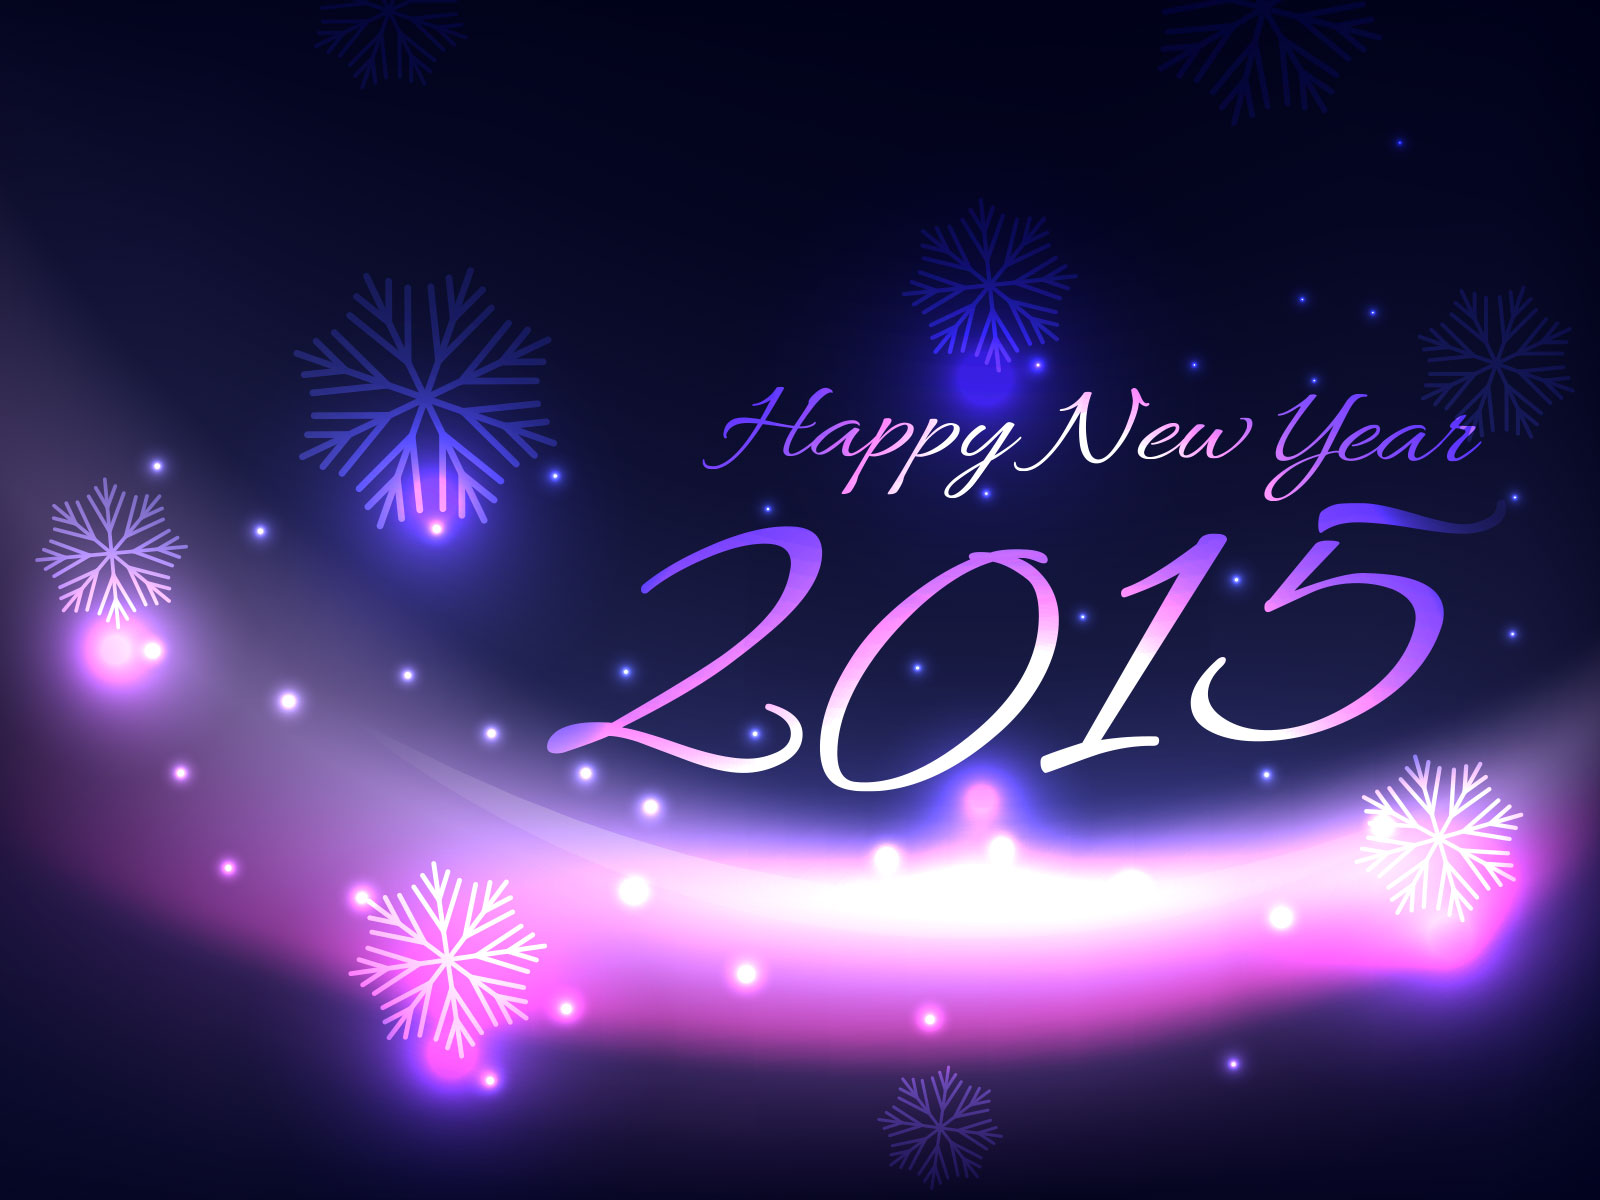 16640 new year 2015 wallpaper 1600x1200